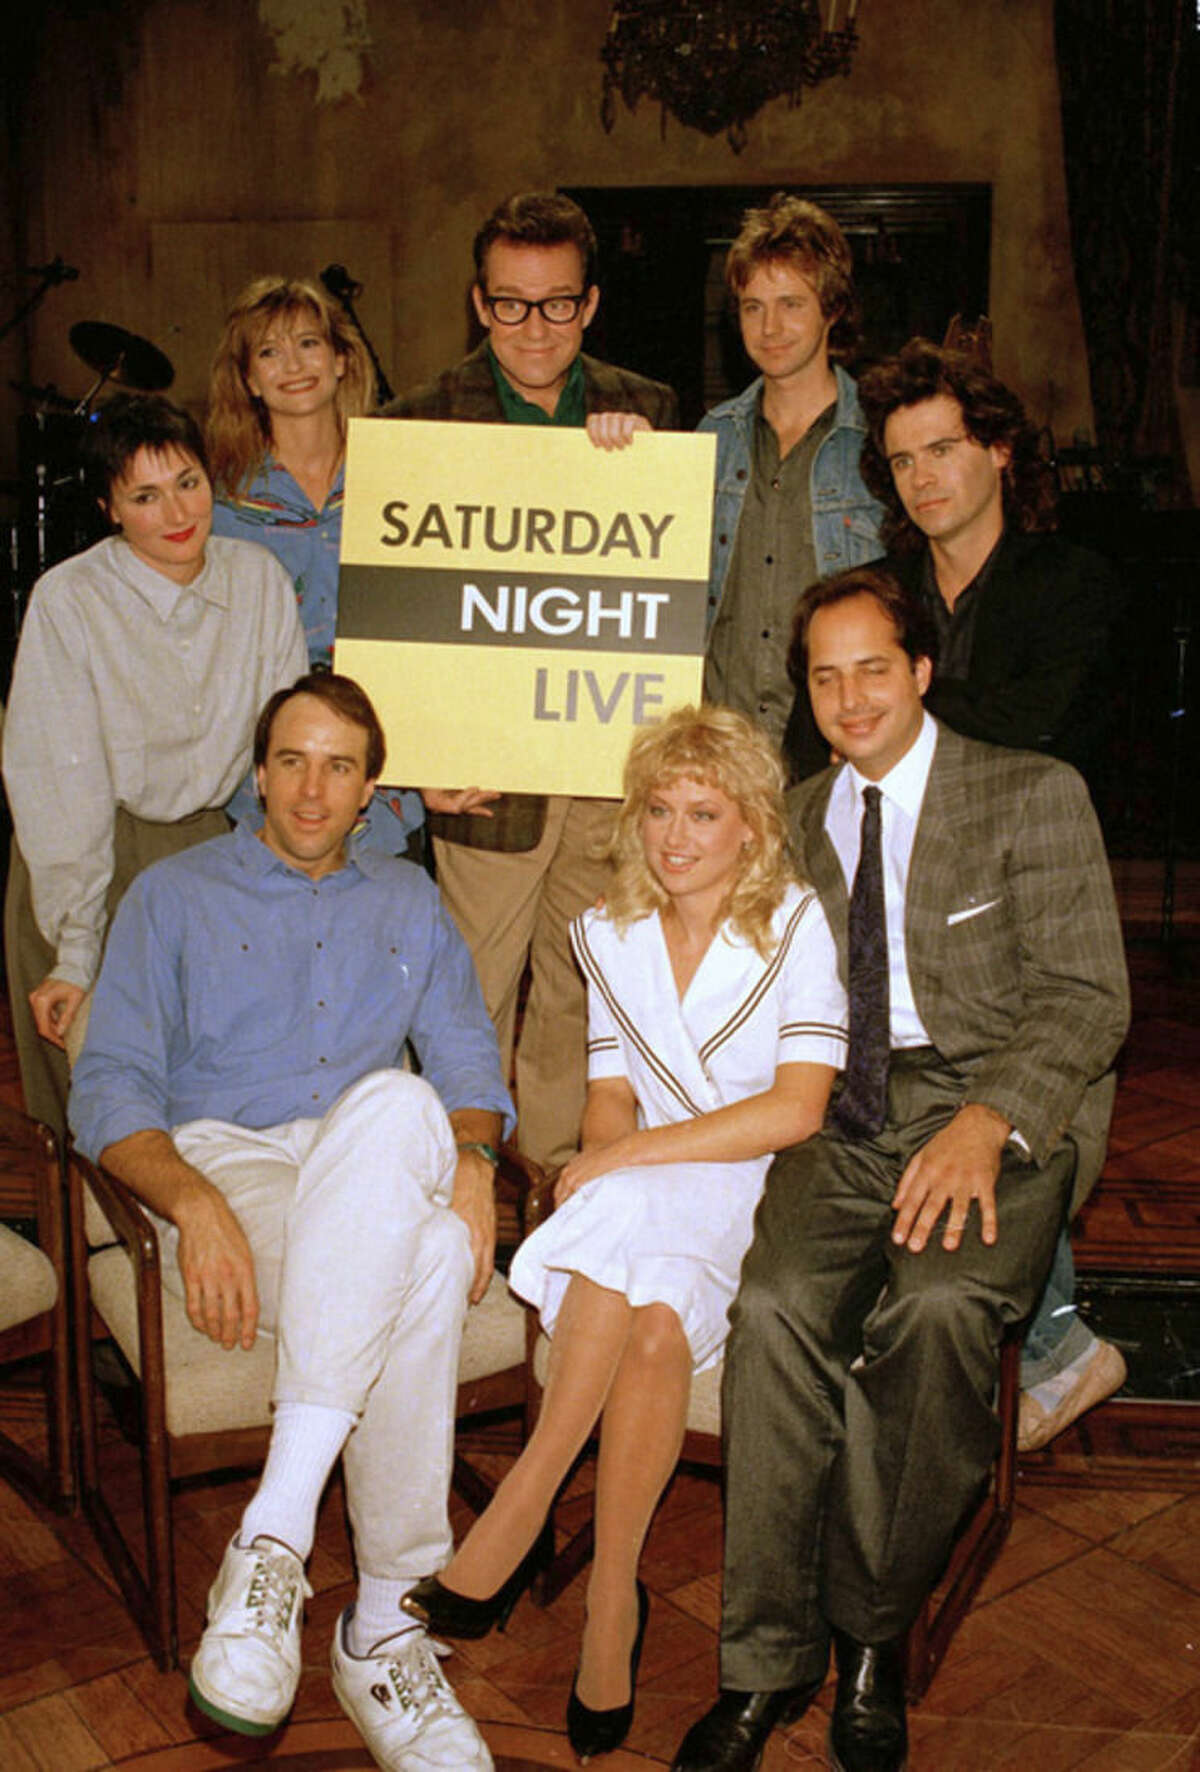 FILE - In this Dec. 9, 1986 file photo, the cast of NBC's